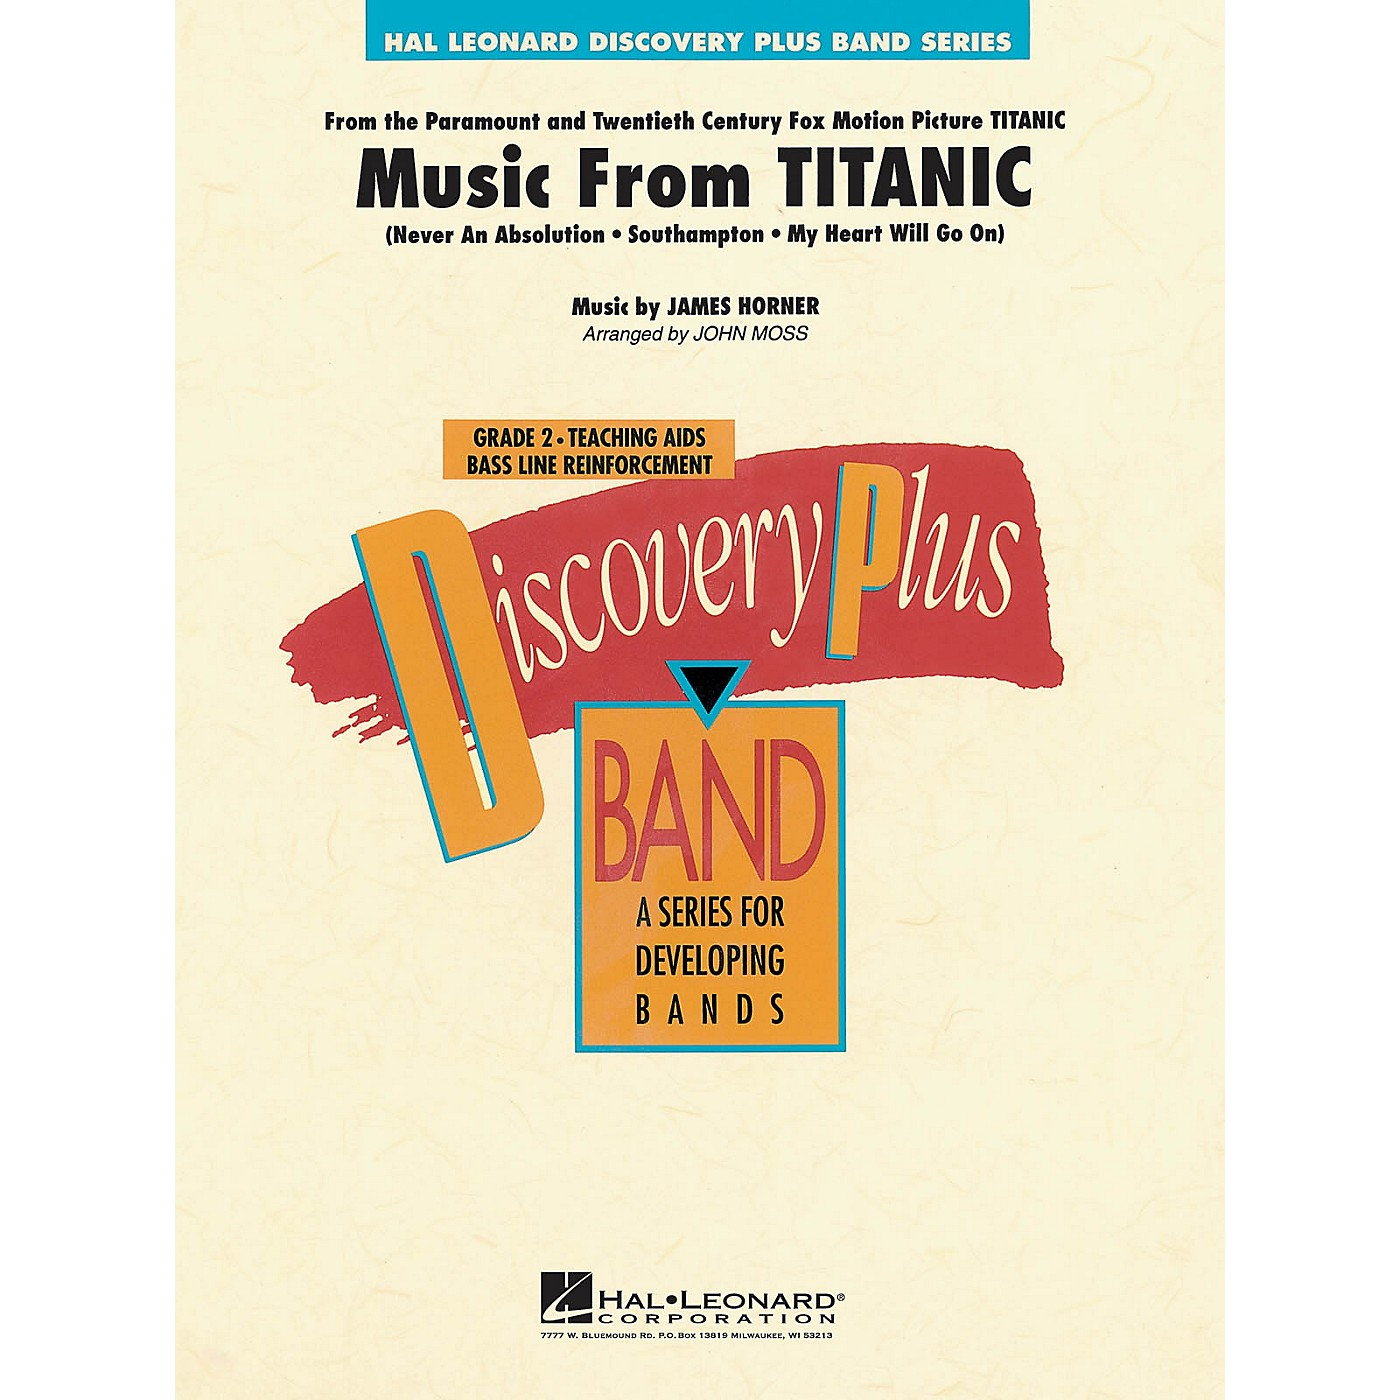 Hal Leonard Music from Titanic - Discovery Plus Concert Band Series Level 2 arranged by John Moss thumbnail